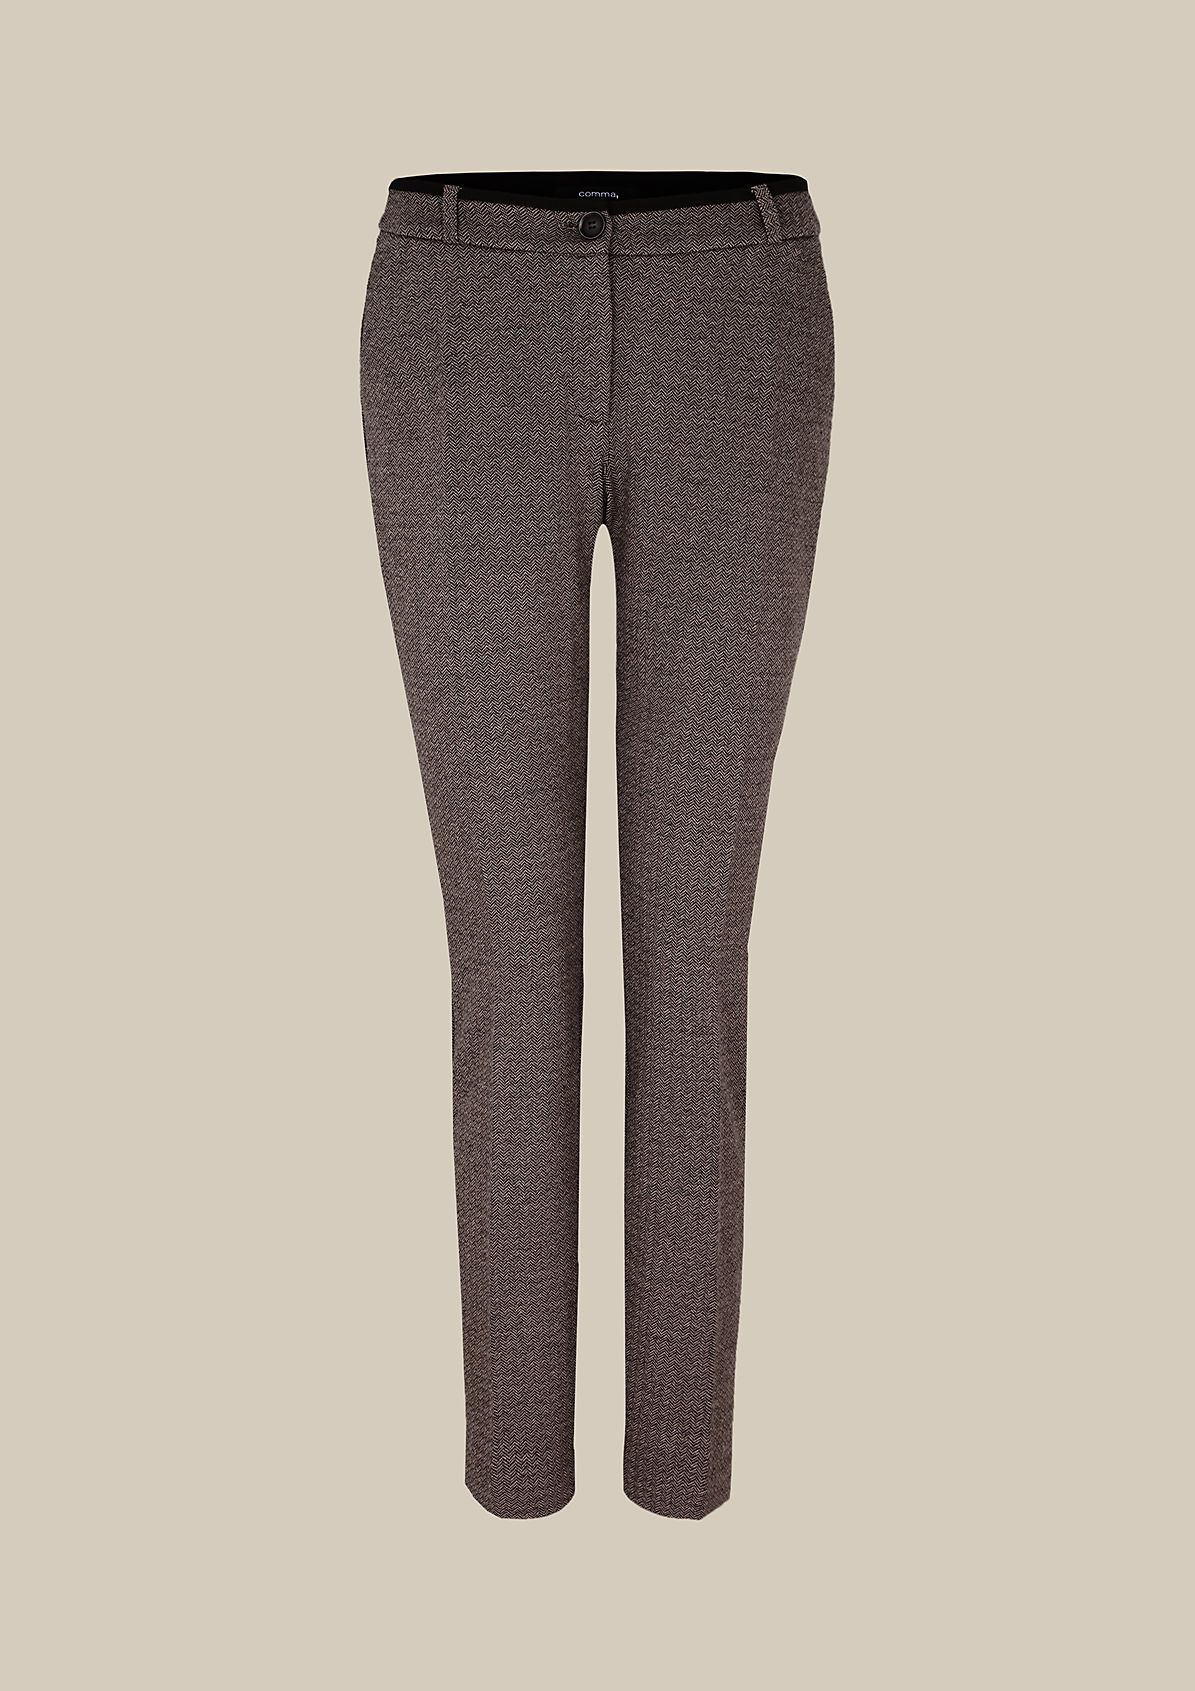 Elegant business trousers with a decorative herringbone pattern from s.Oliver